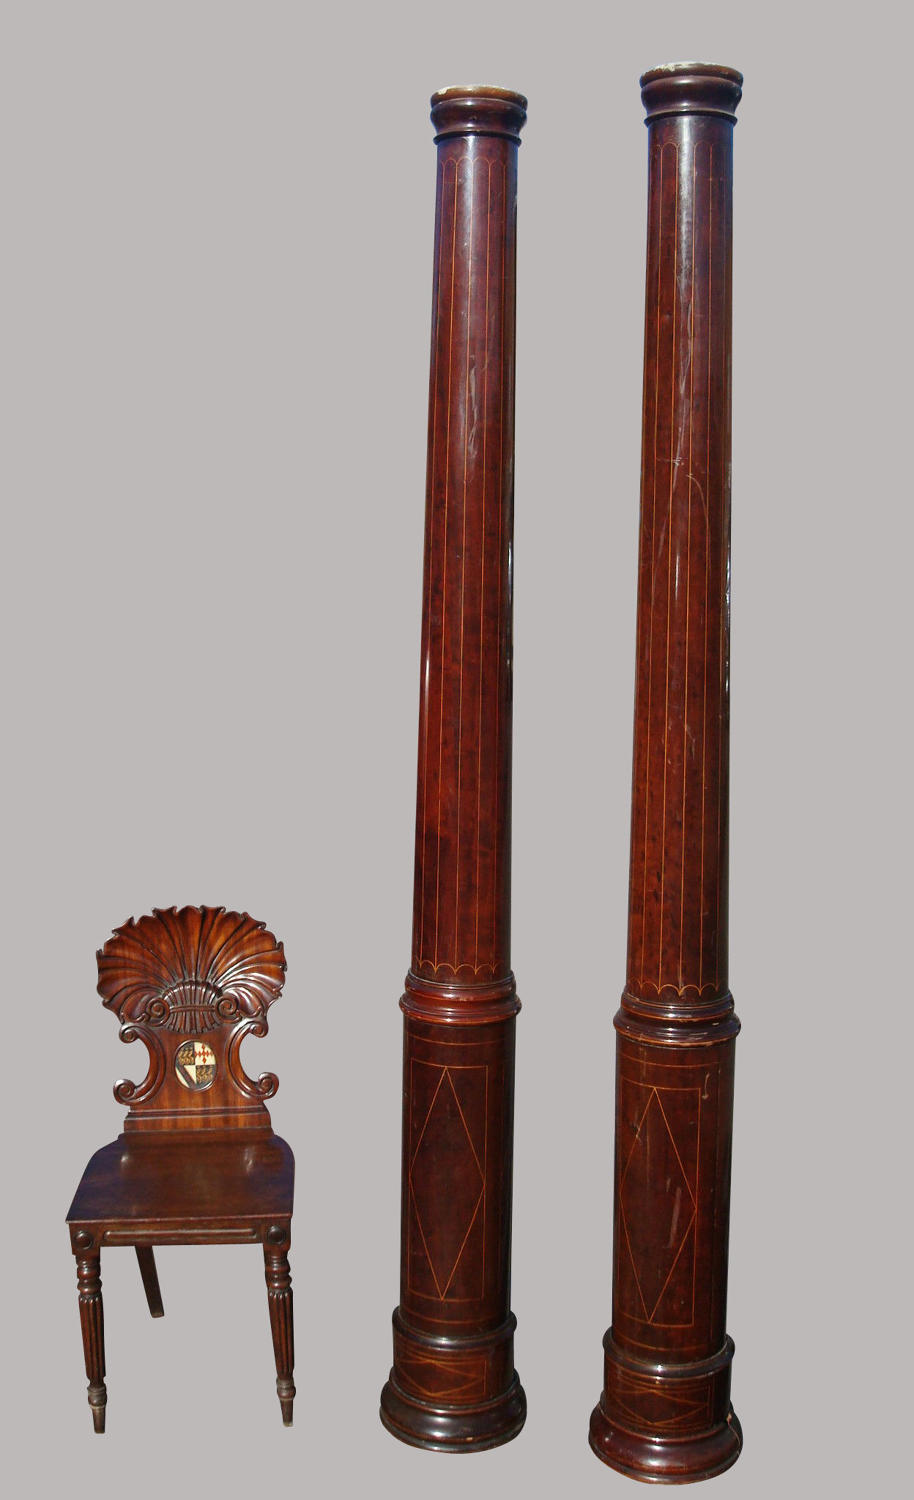 19th century very tall pair of columns